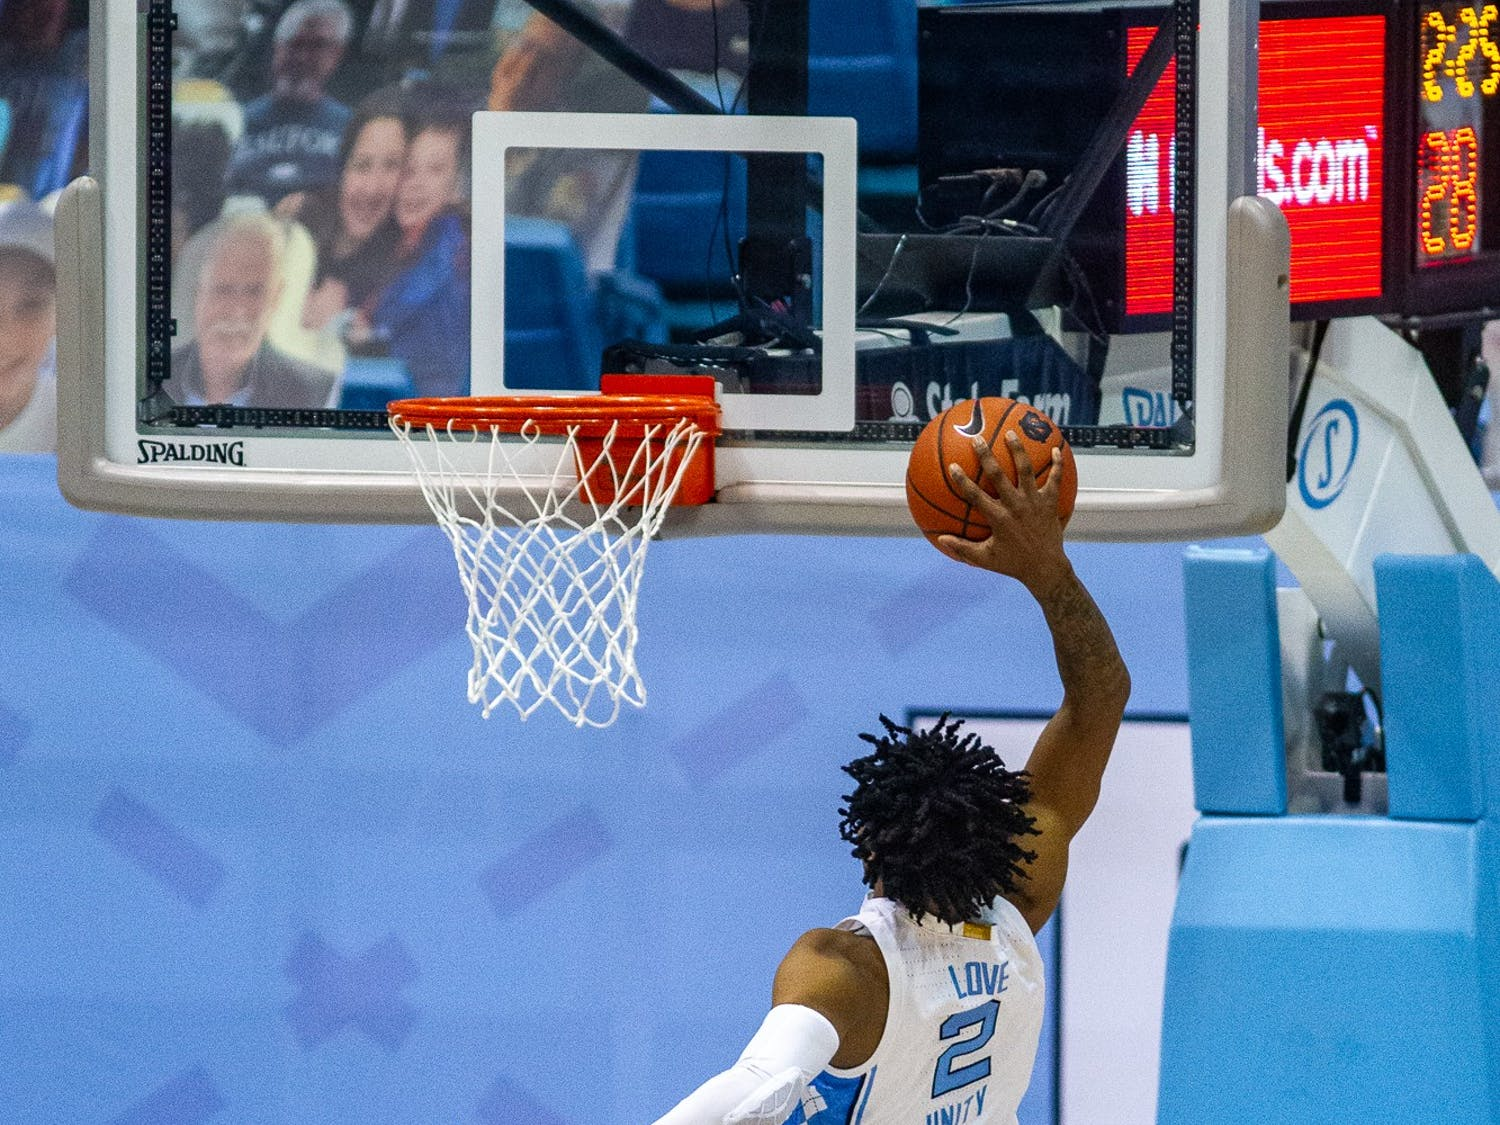 UNC freshman guard Caleb Love (2) dunks in the Dean Smith Center on Jan. 20, 2021 during a game against Wake Forest. The Tar Heels beat the Demon Deacons 80-73.